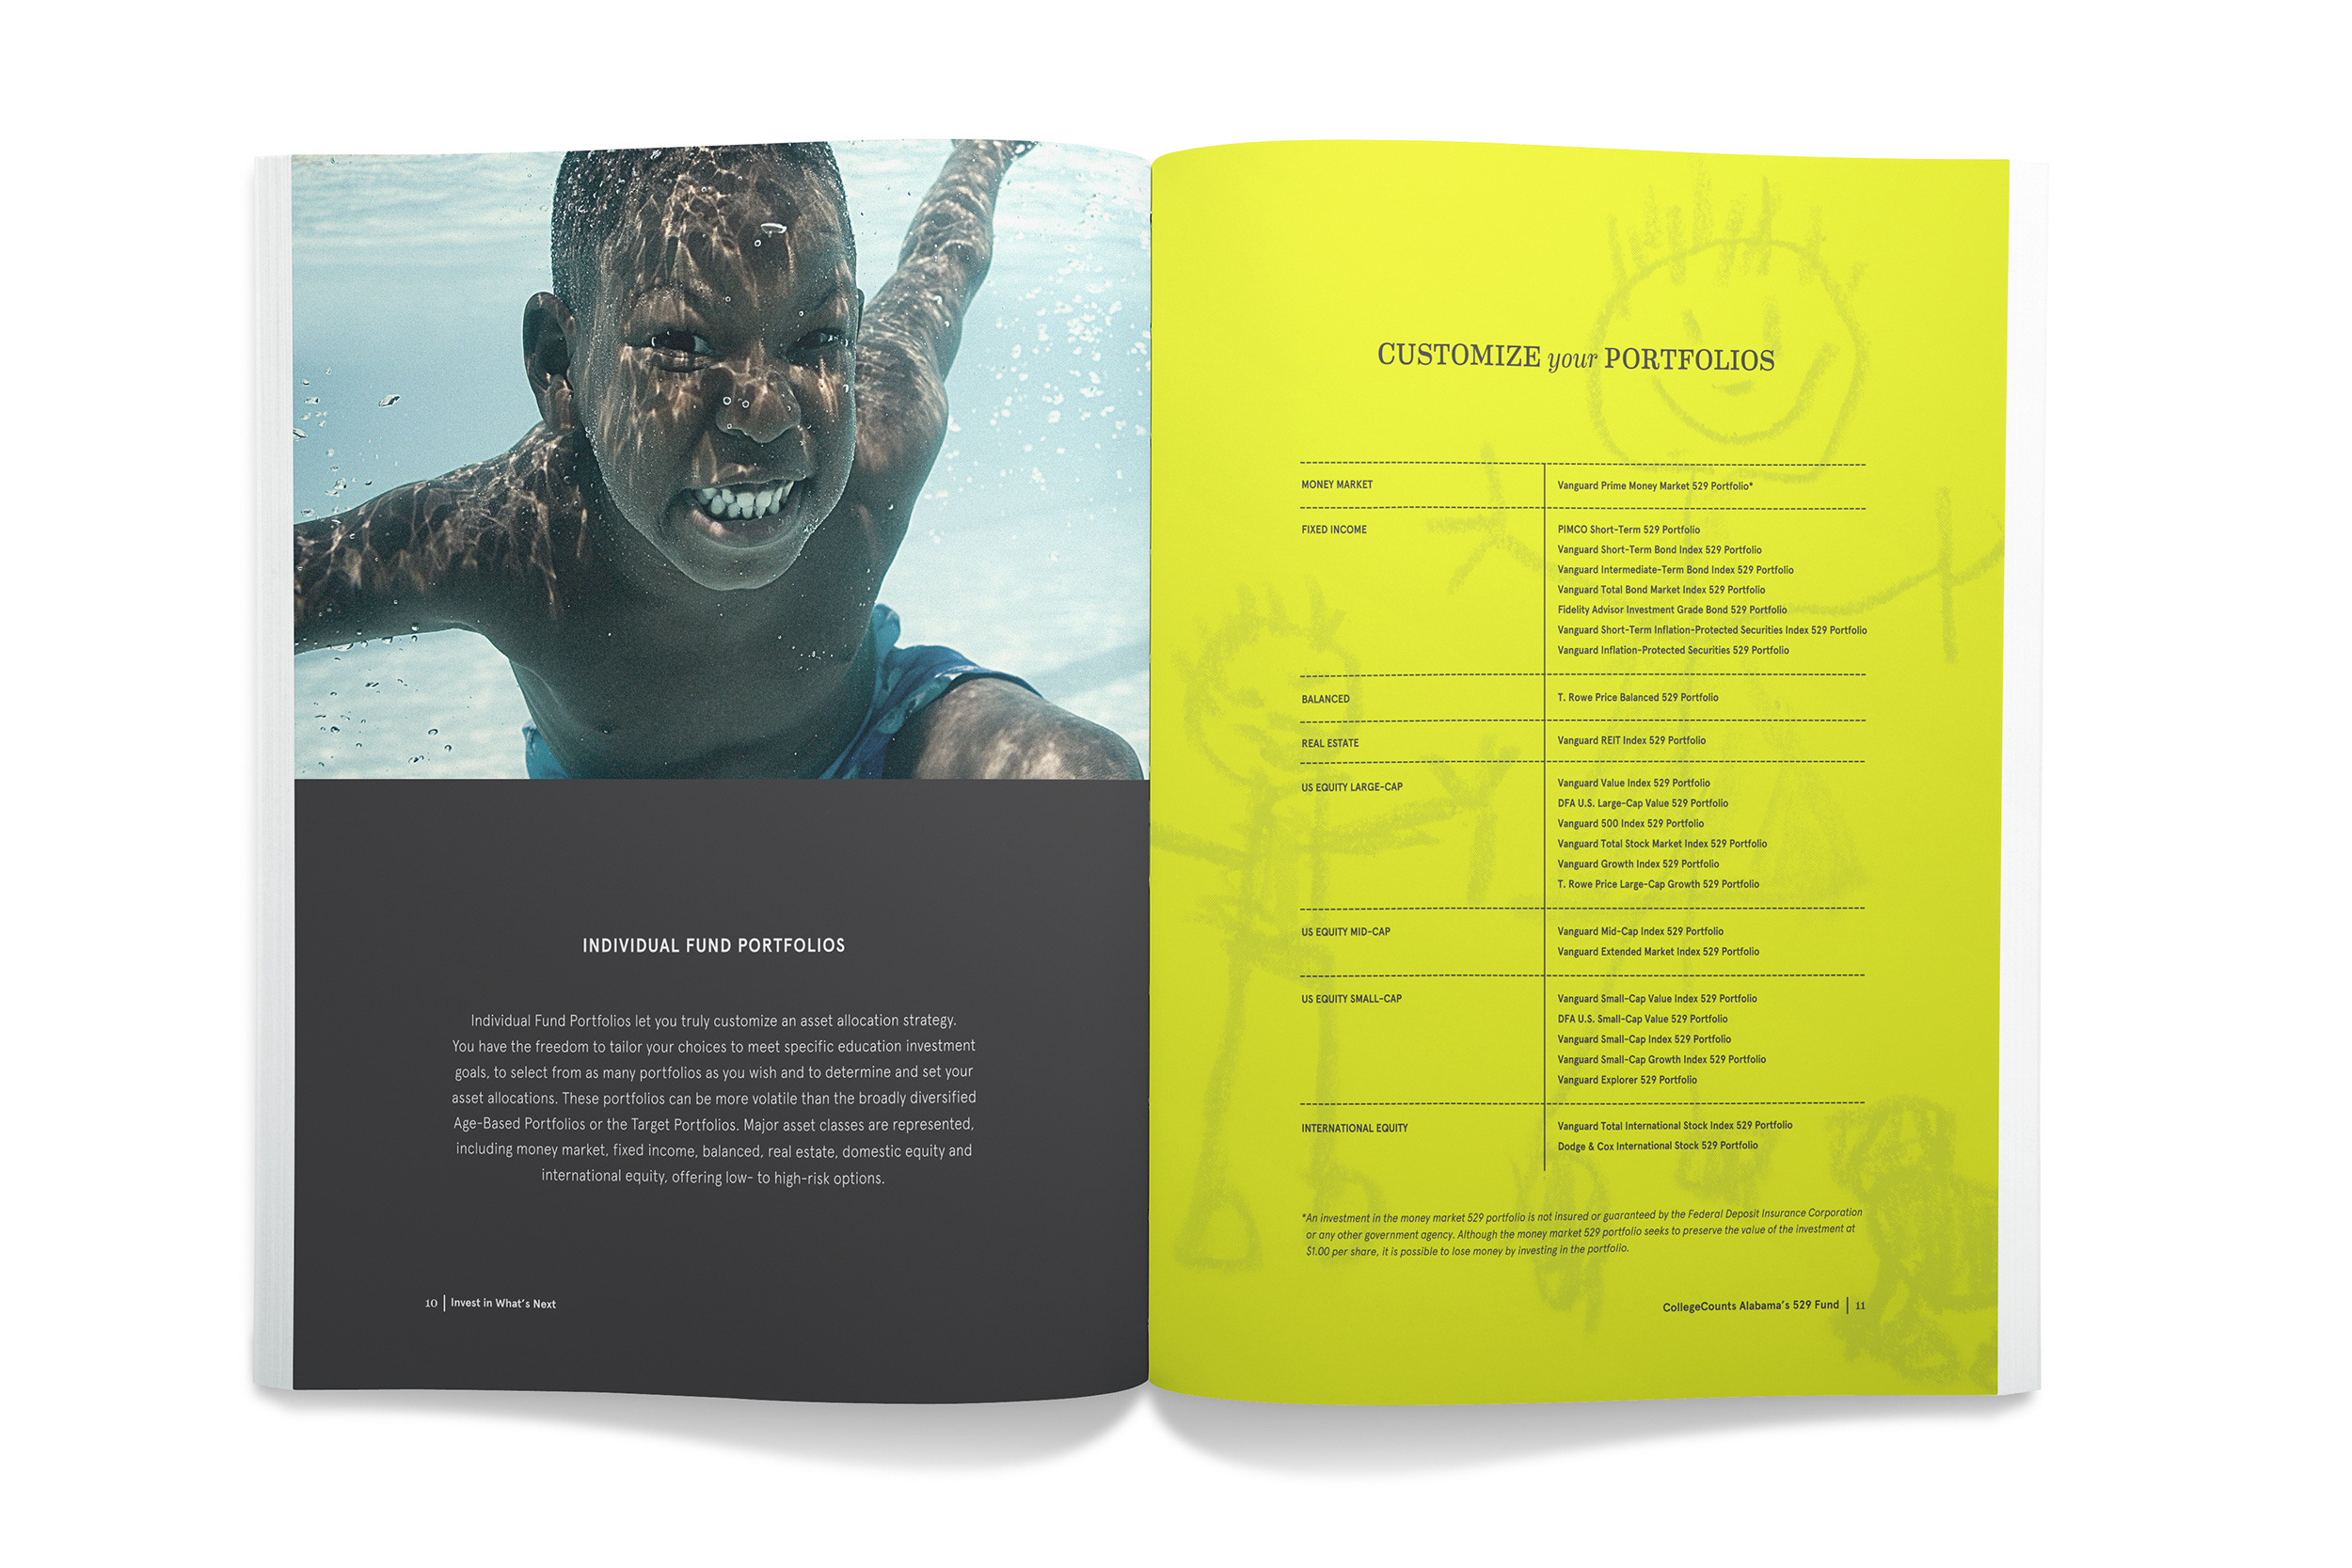 06-Booklet-0285-4-2014-11-20